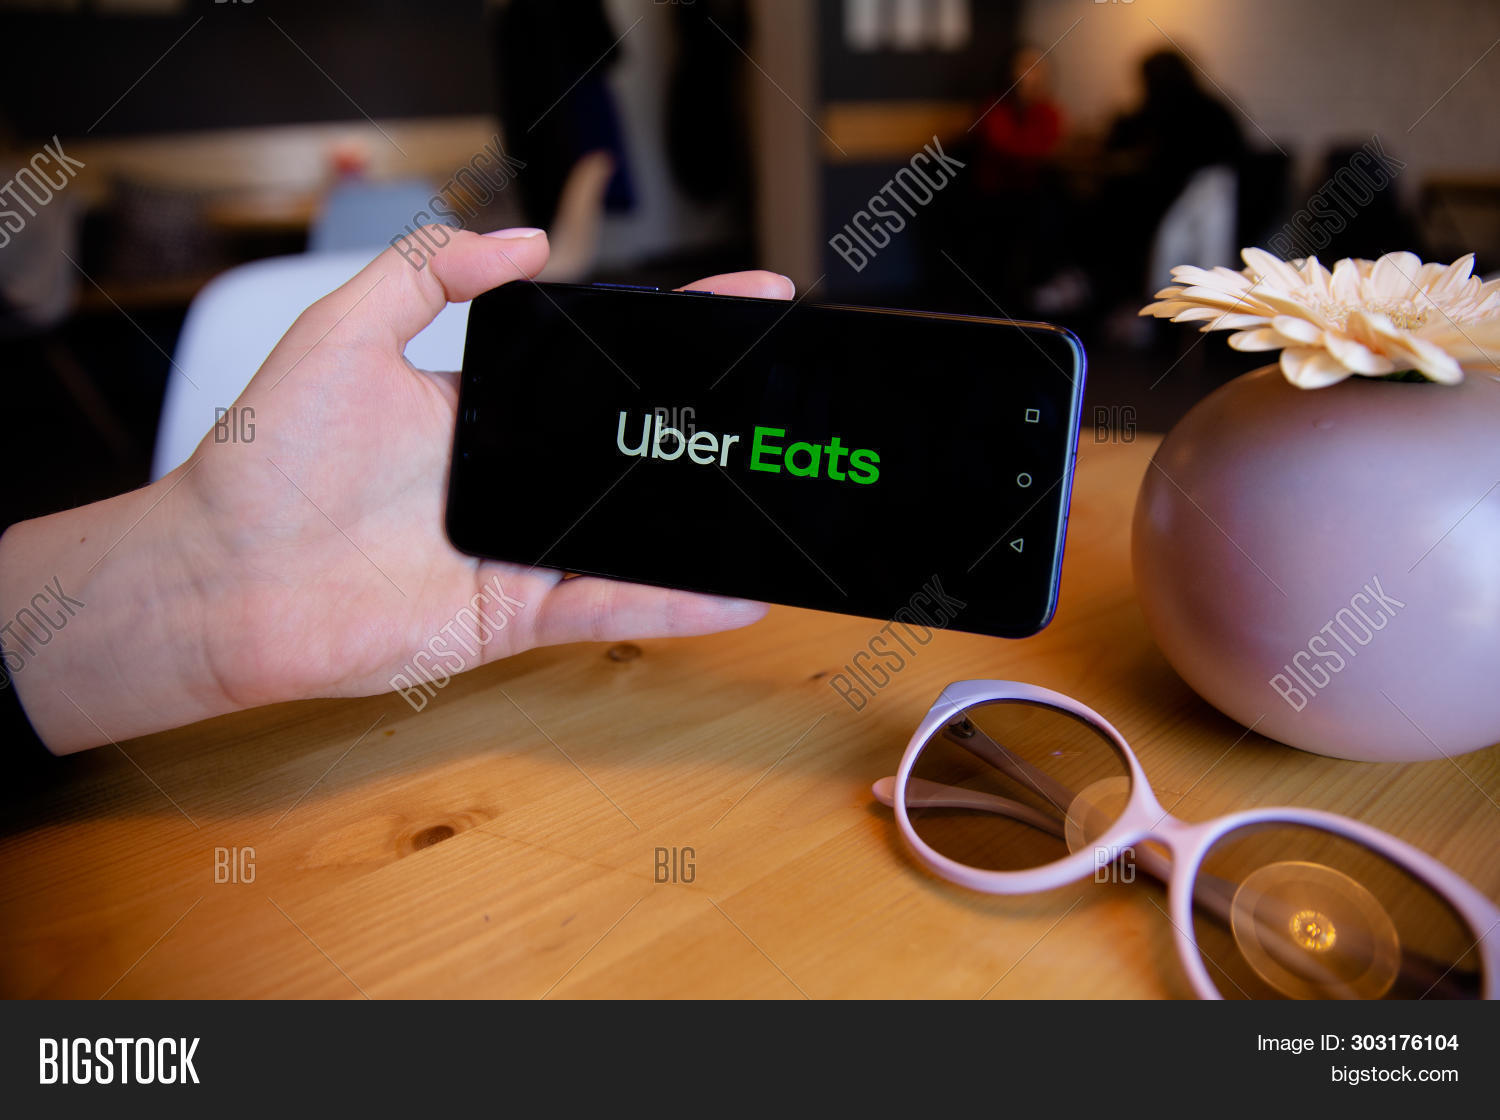 Tula, Russia - March 25, 2019: Uber Eats On Phone Display.